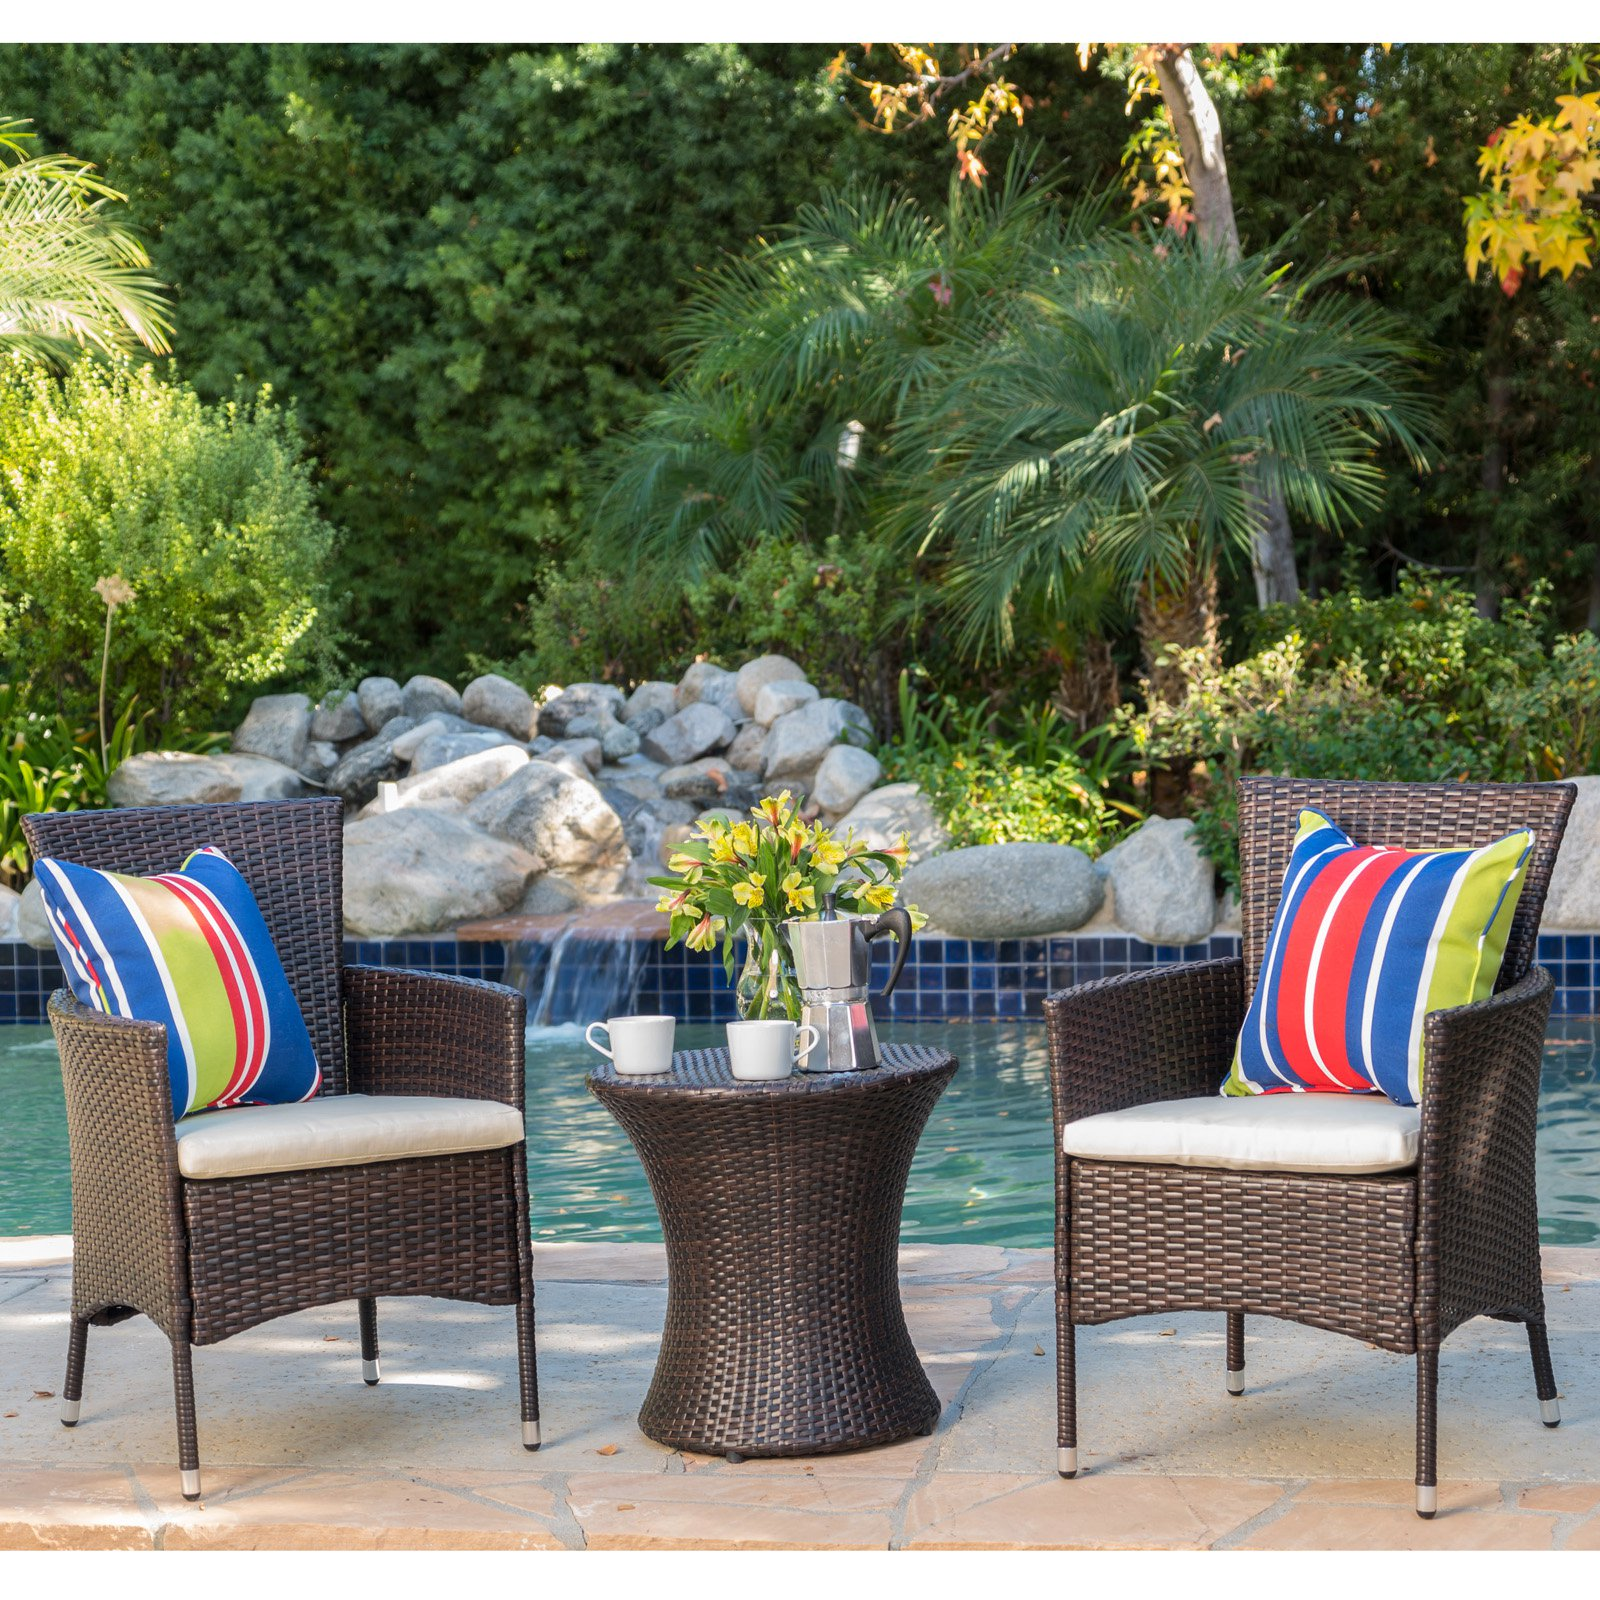 Beau Carioca 3 Piece Wicker Patio Chat Set